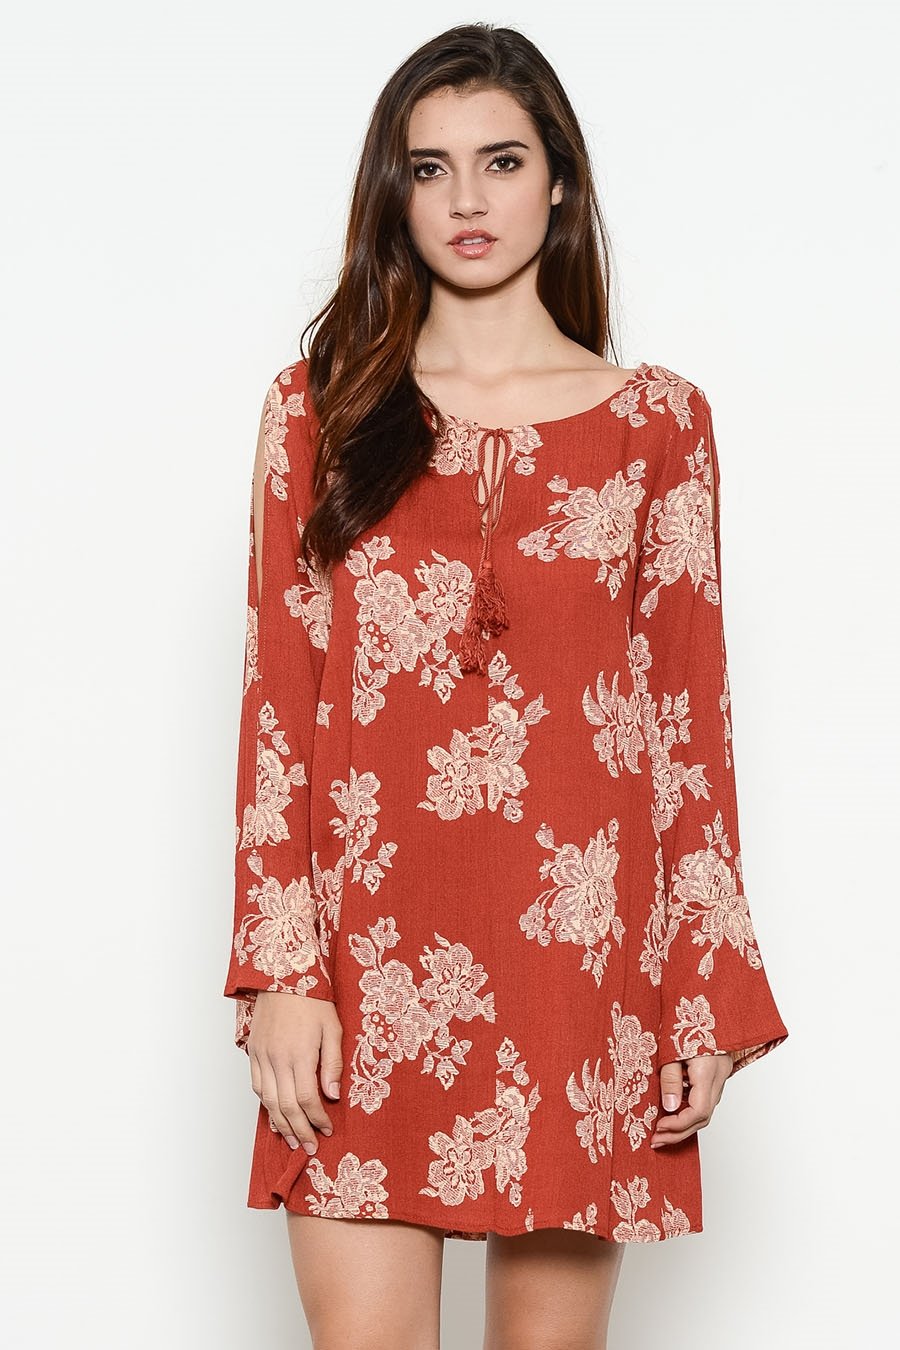 PRINT OPEN SHOULDER TUNIC - orangeshine.com